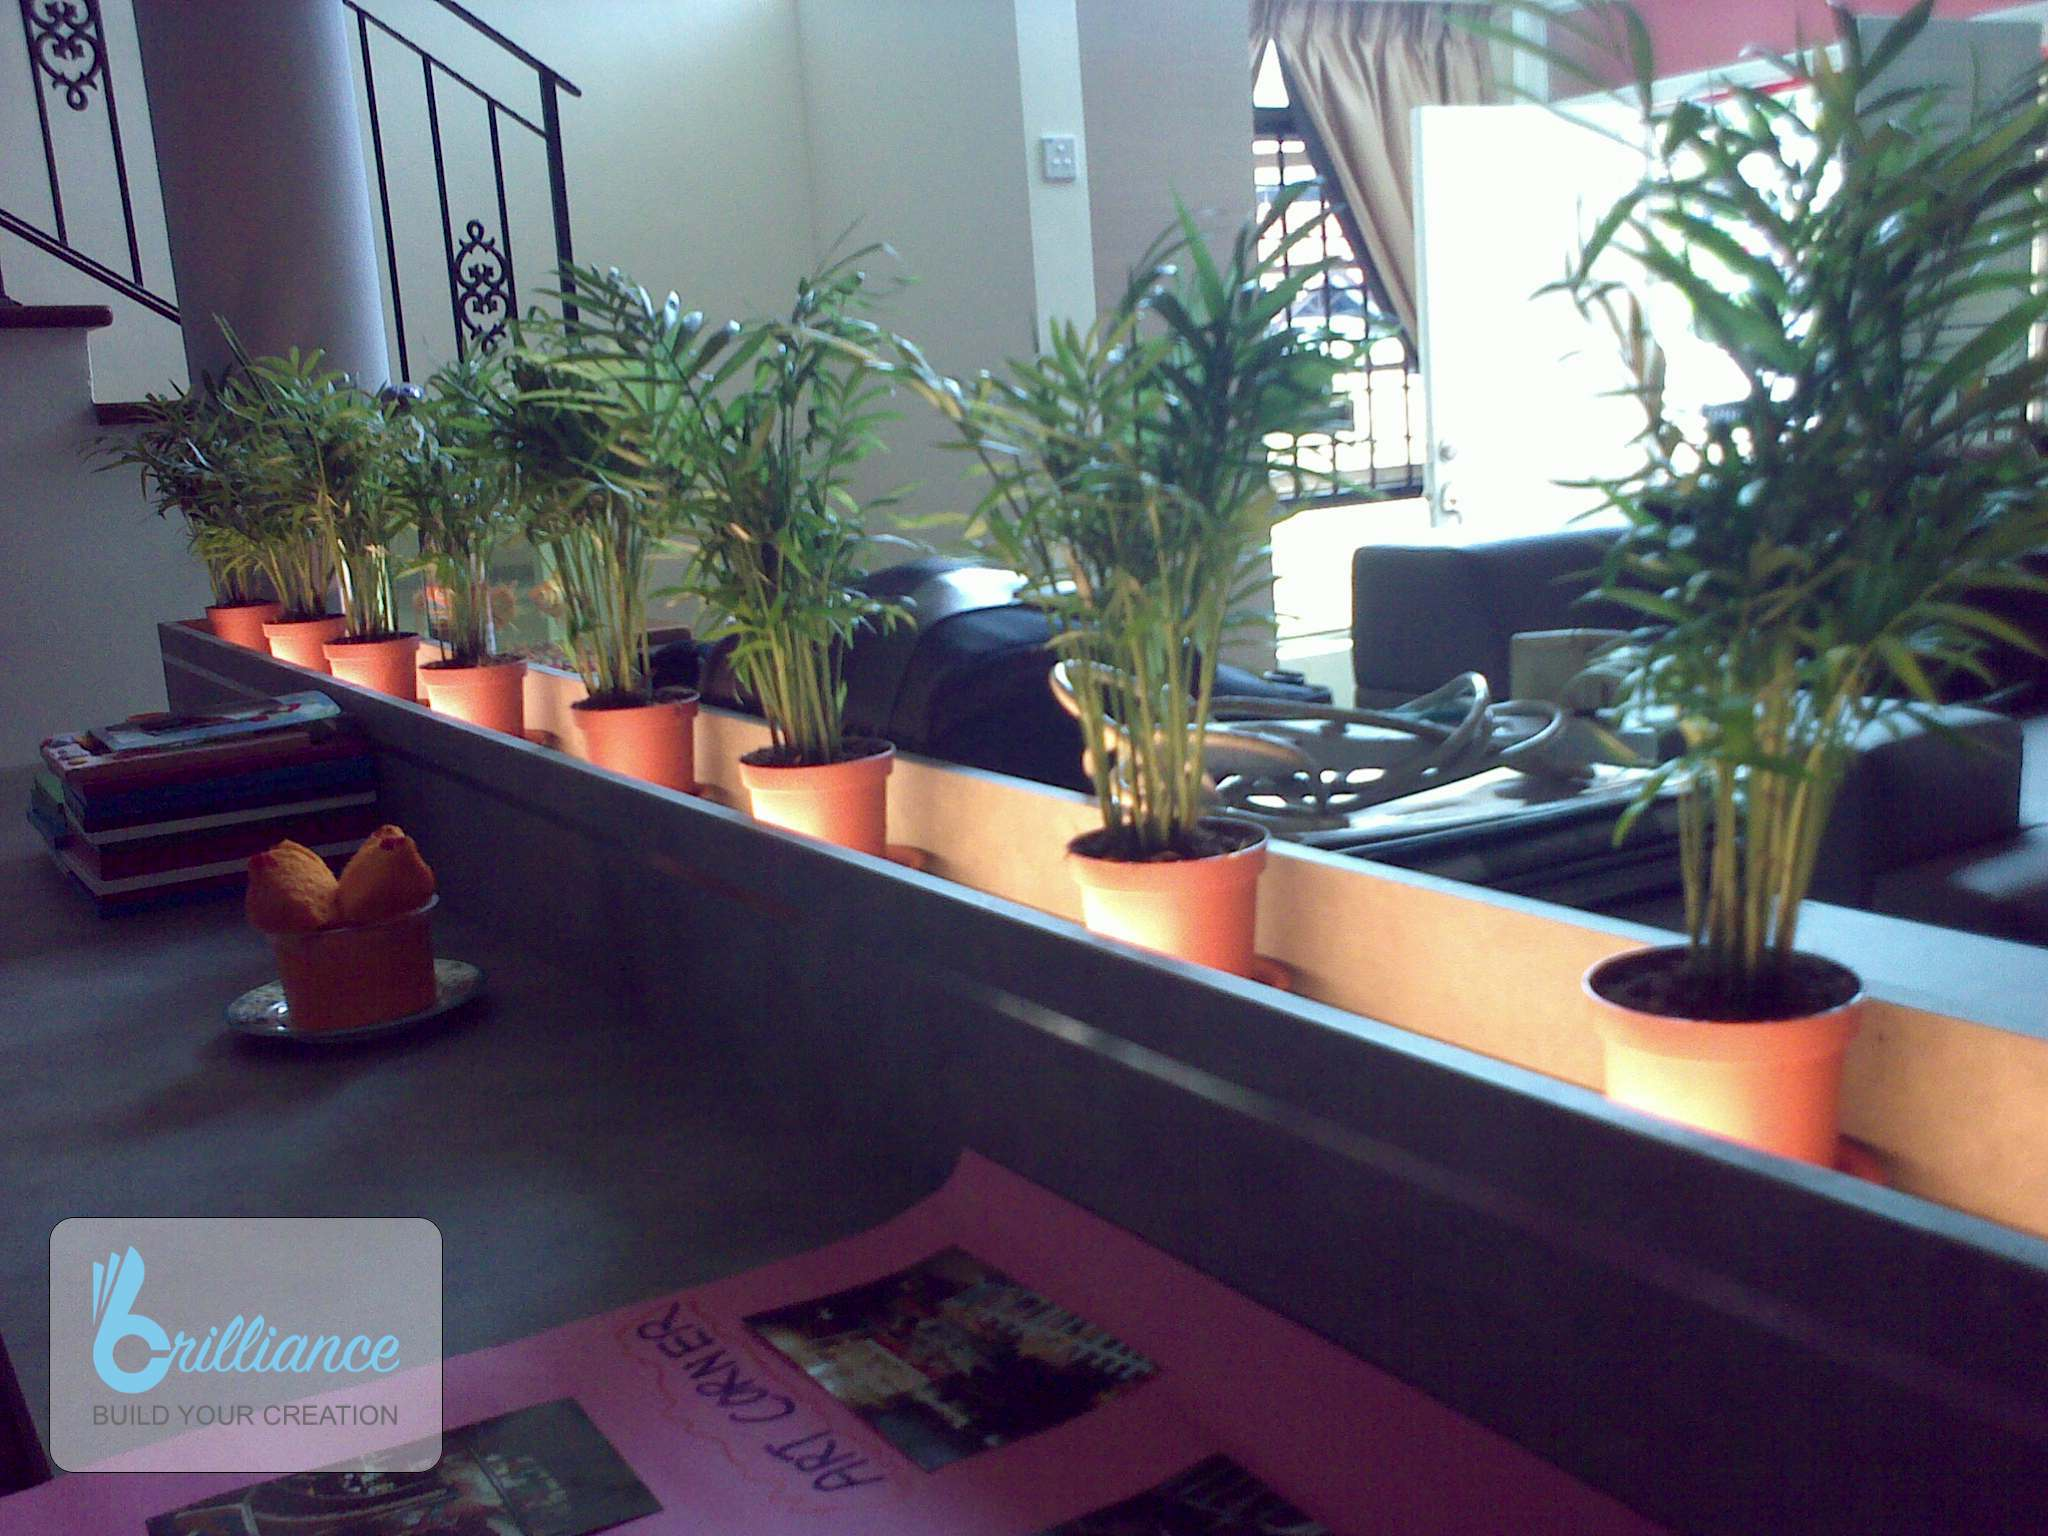 Langsat Road Renovation by Brilliance - plants display